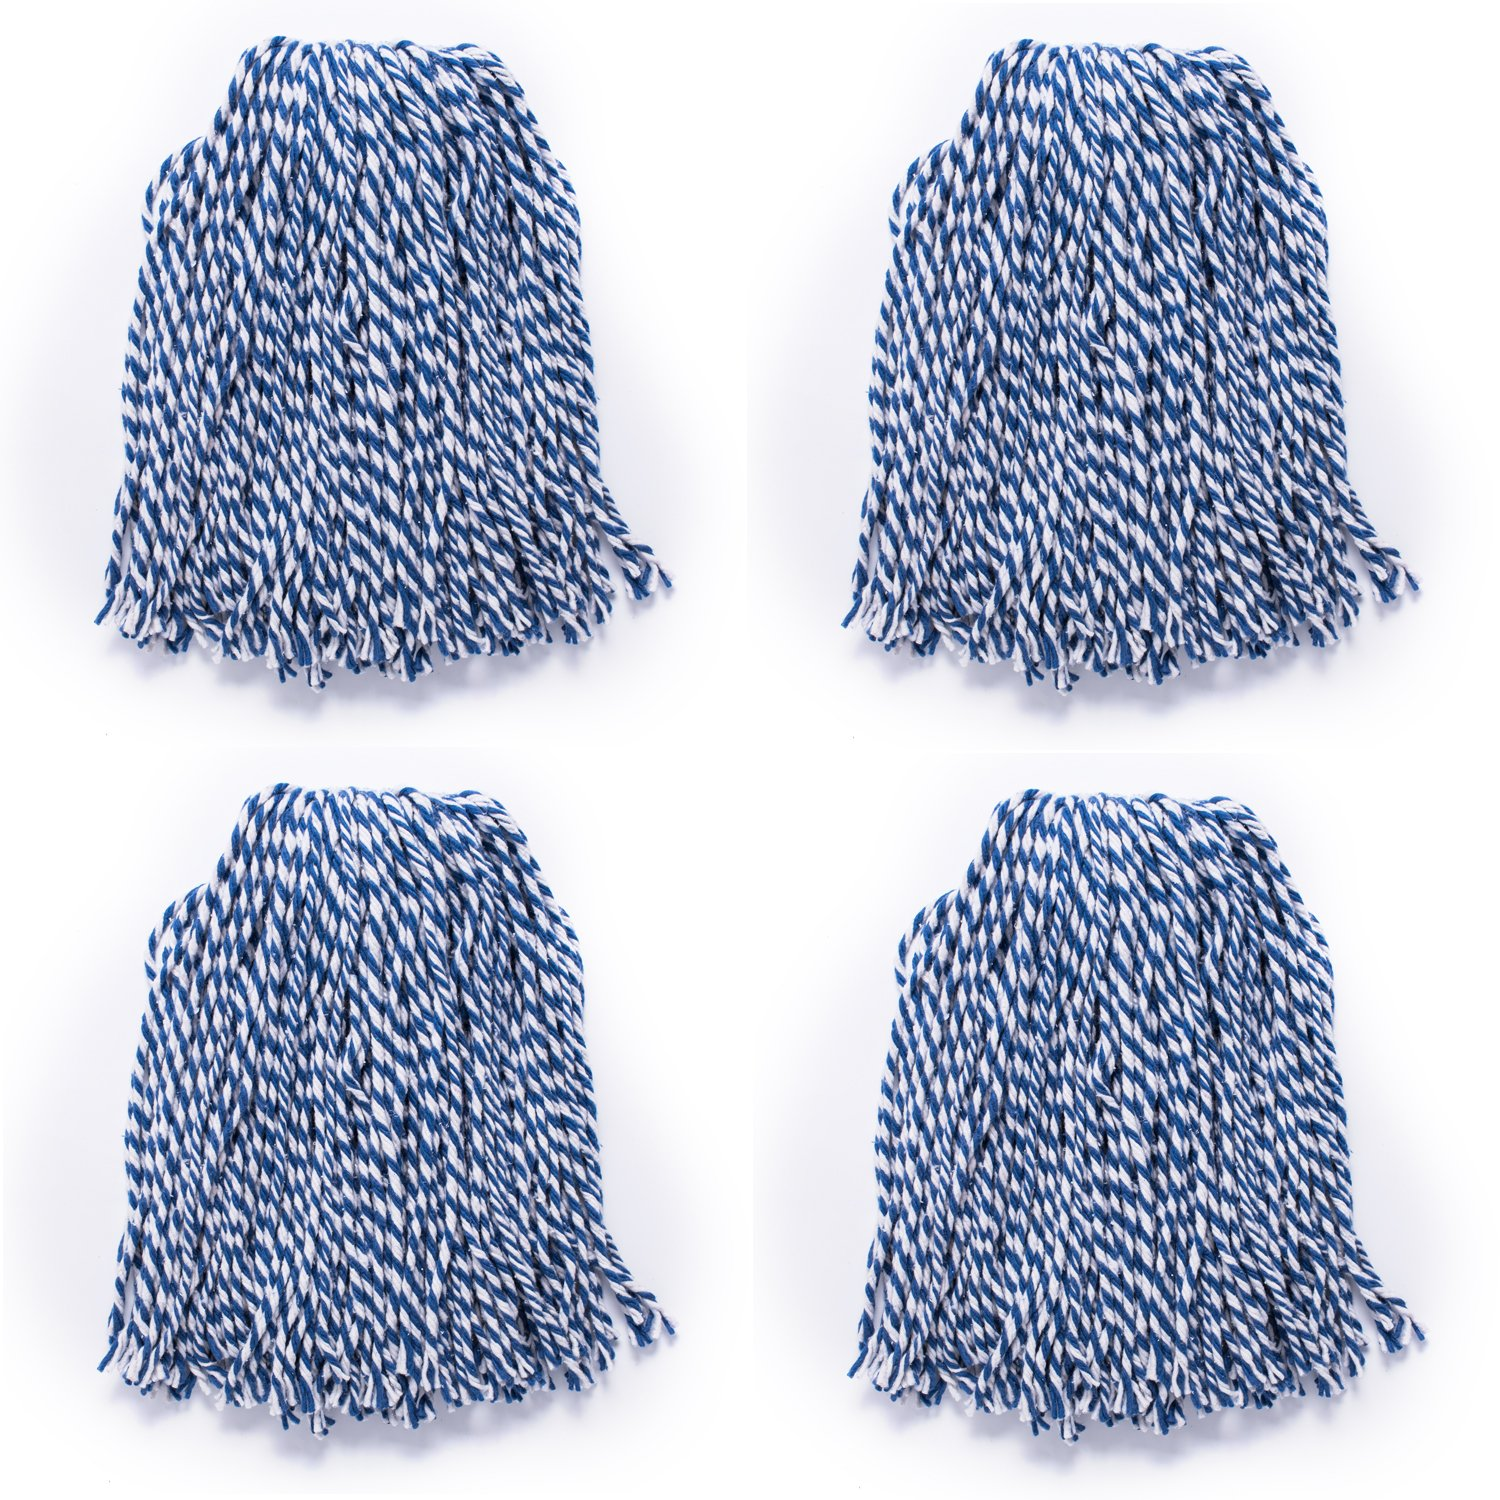 Commercial-Grade String Mop Large Size for Home Blue QIPENG 18 Cotton Wet Mop Heads Refill 4 Pack Industrial Use